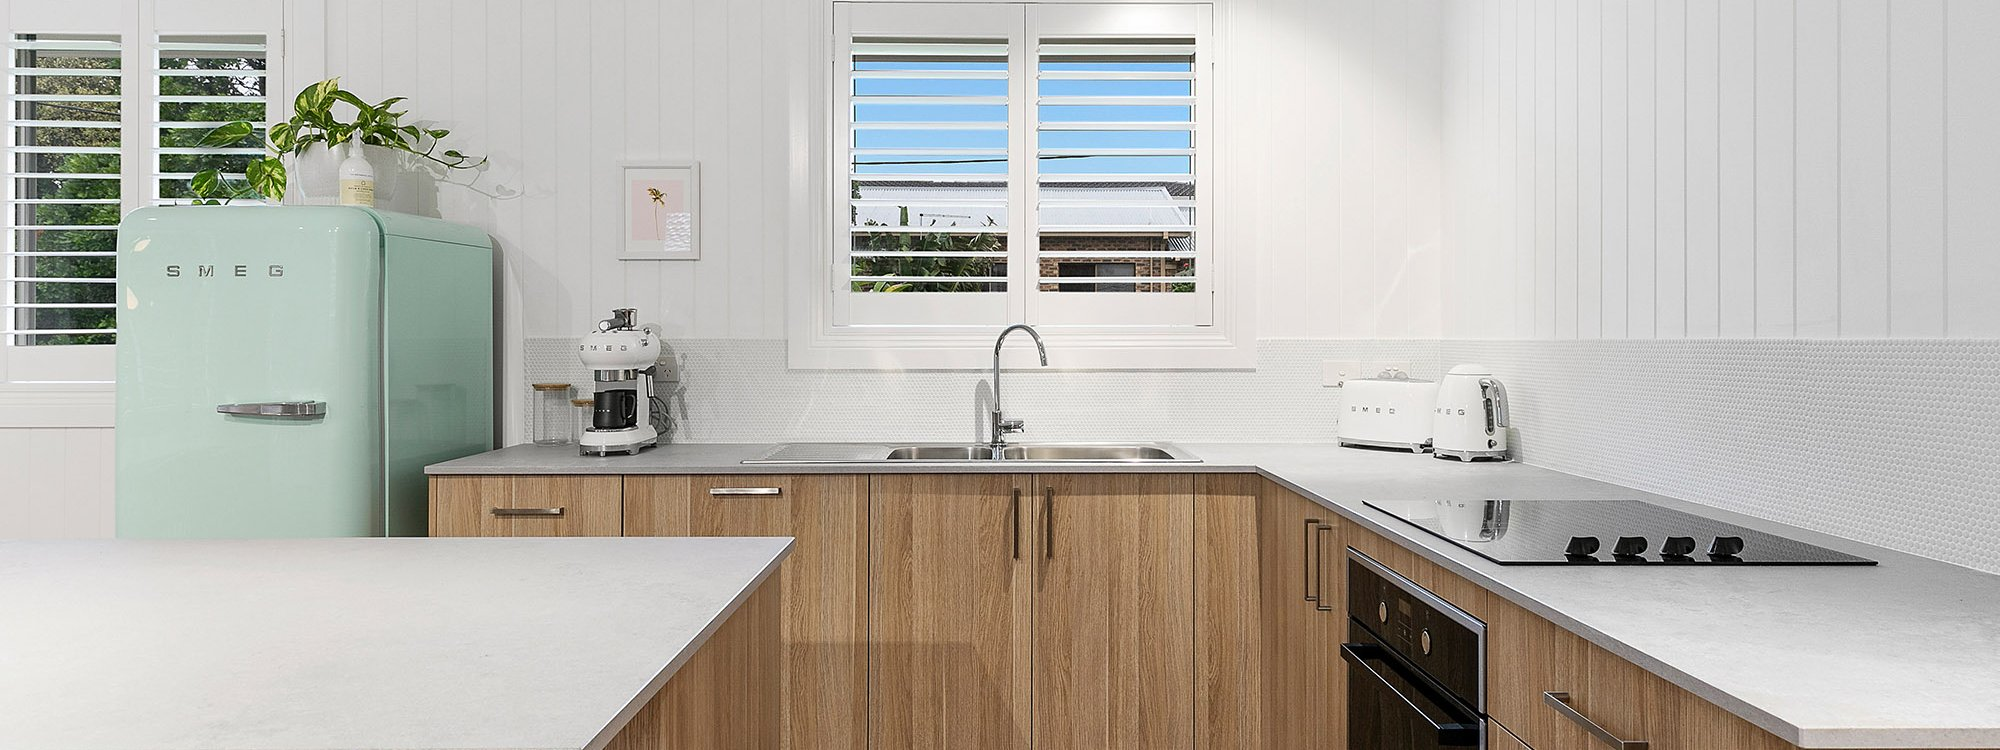 Sunset Beach - Summer Breeze - Brunswick Heads - Kitchen b